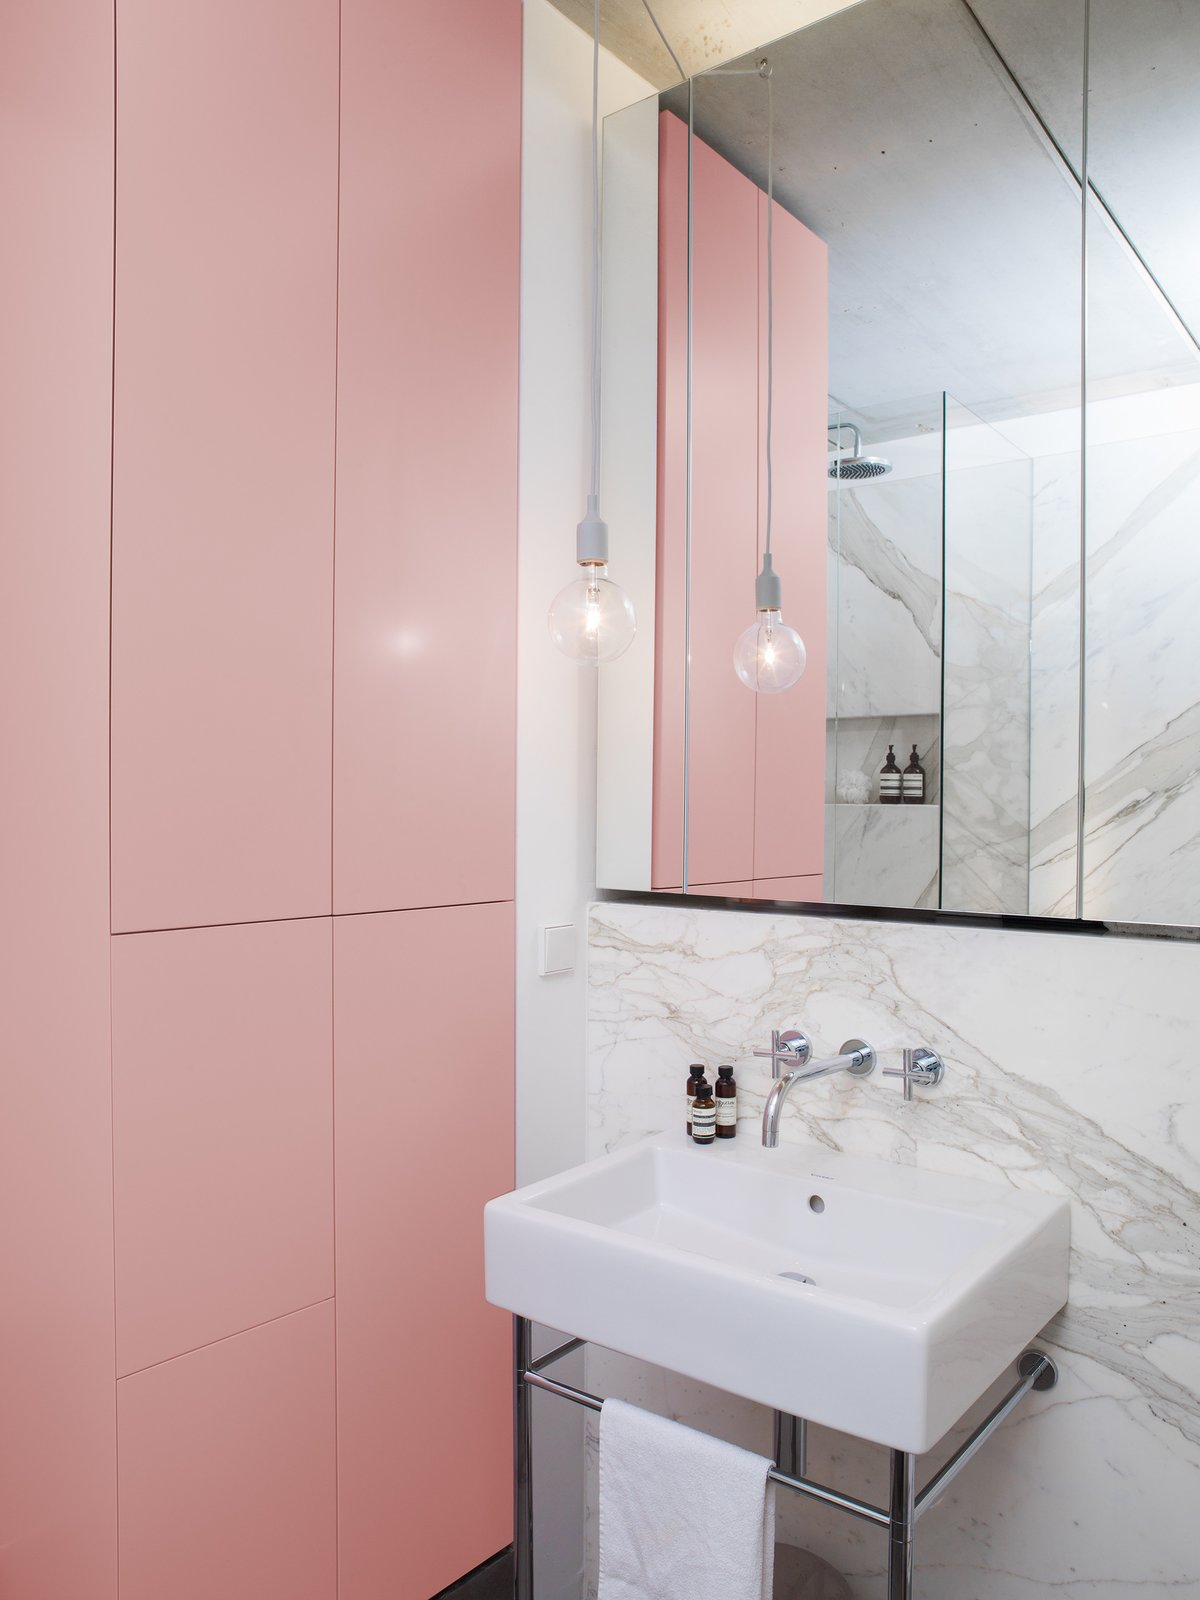 Bath Room, Pendant Lighting, Marble Wall, Wall Mount Sink, Corner Shower, and Pedestal Sink Statuario marble appears again in the bathroom, where it contrasts pink cabinets that create ample room for storage.  Photo 6 of 21 in Mad About Marble: 20 Kitchens and Bathrooms